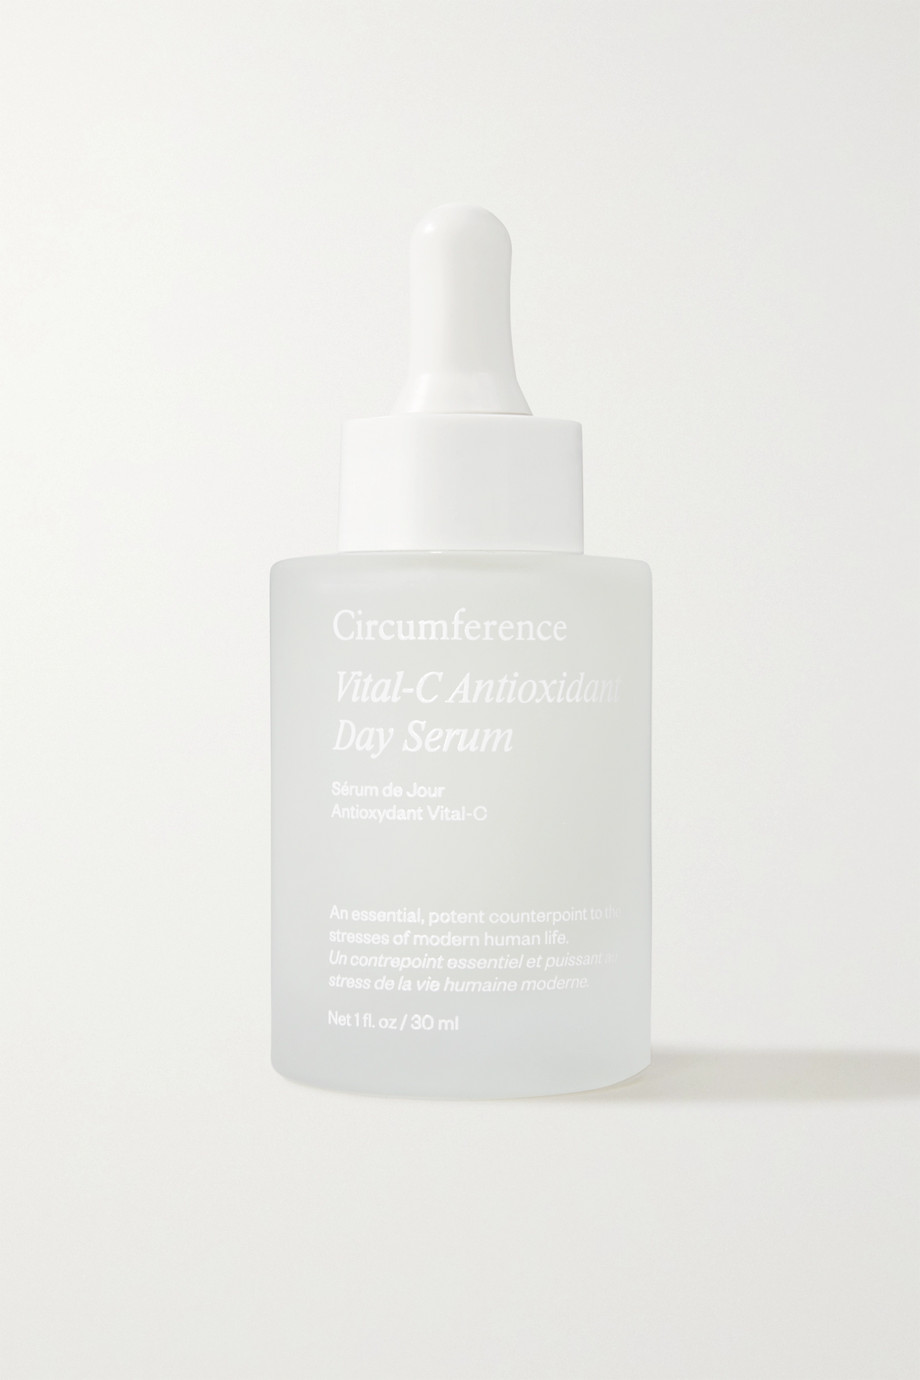 Circumference Vital-C Antioxidant Day Serum, 30ml